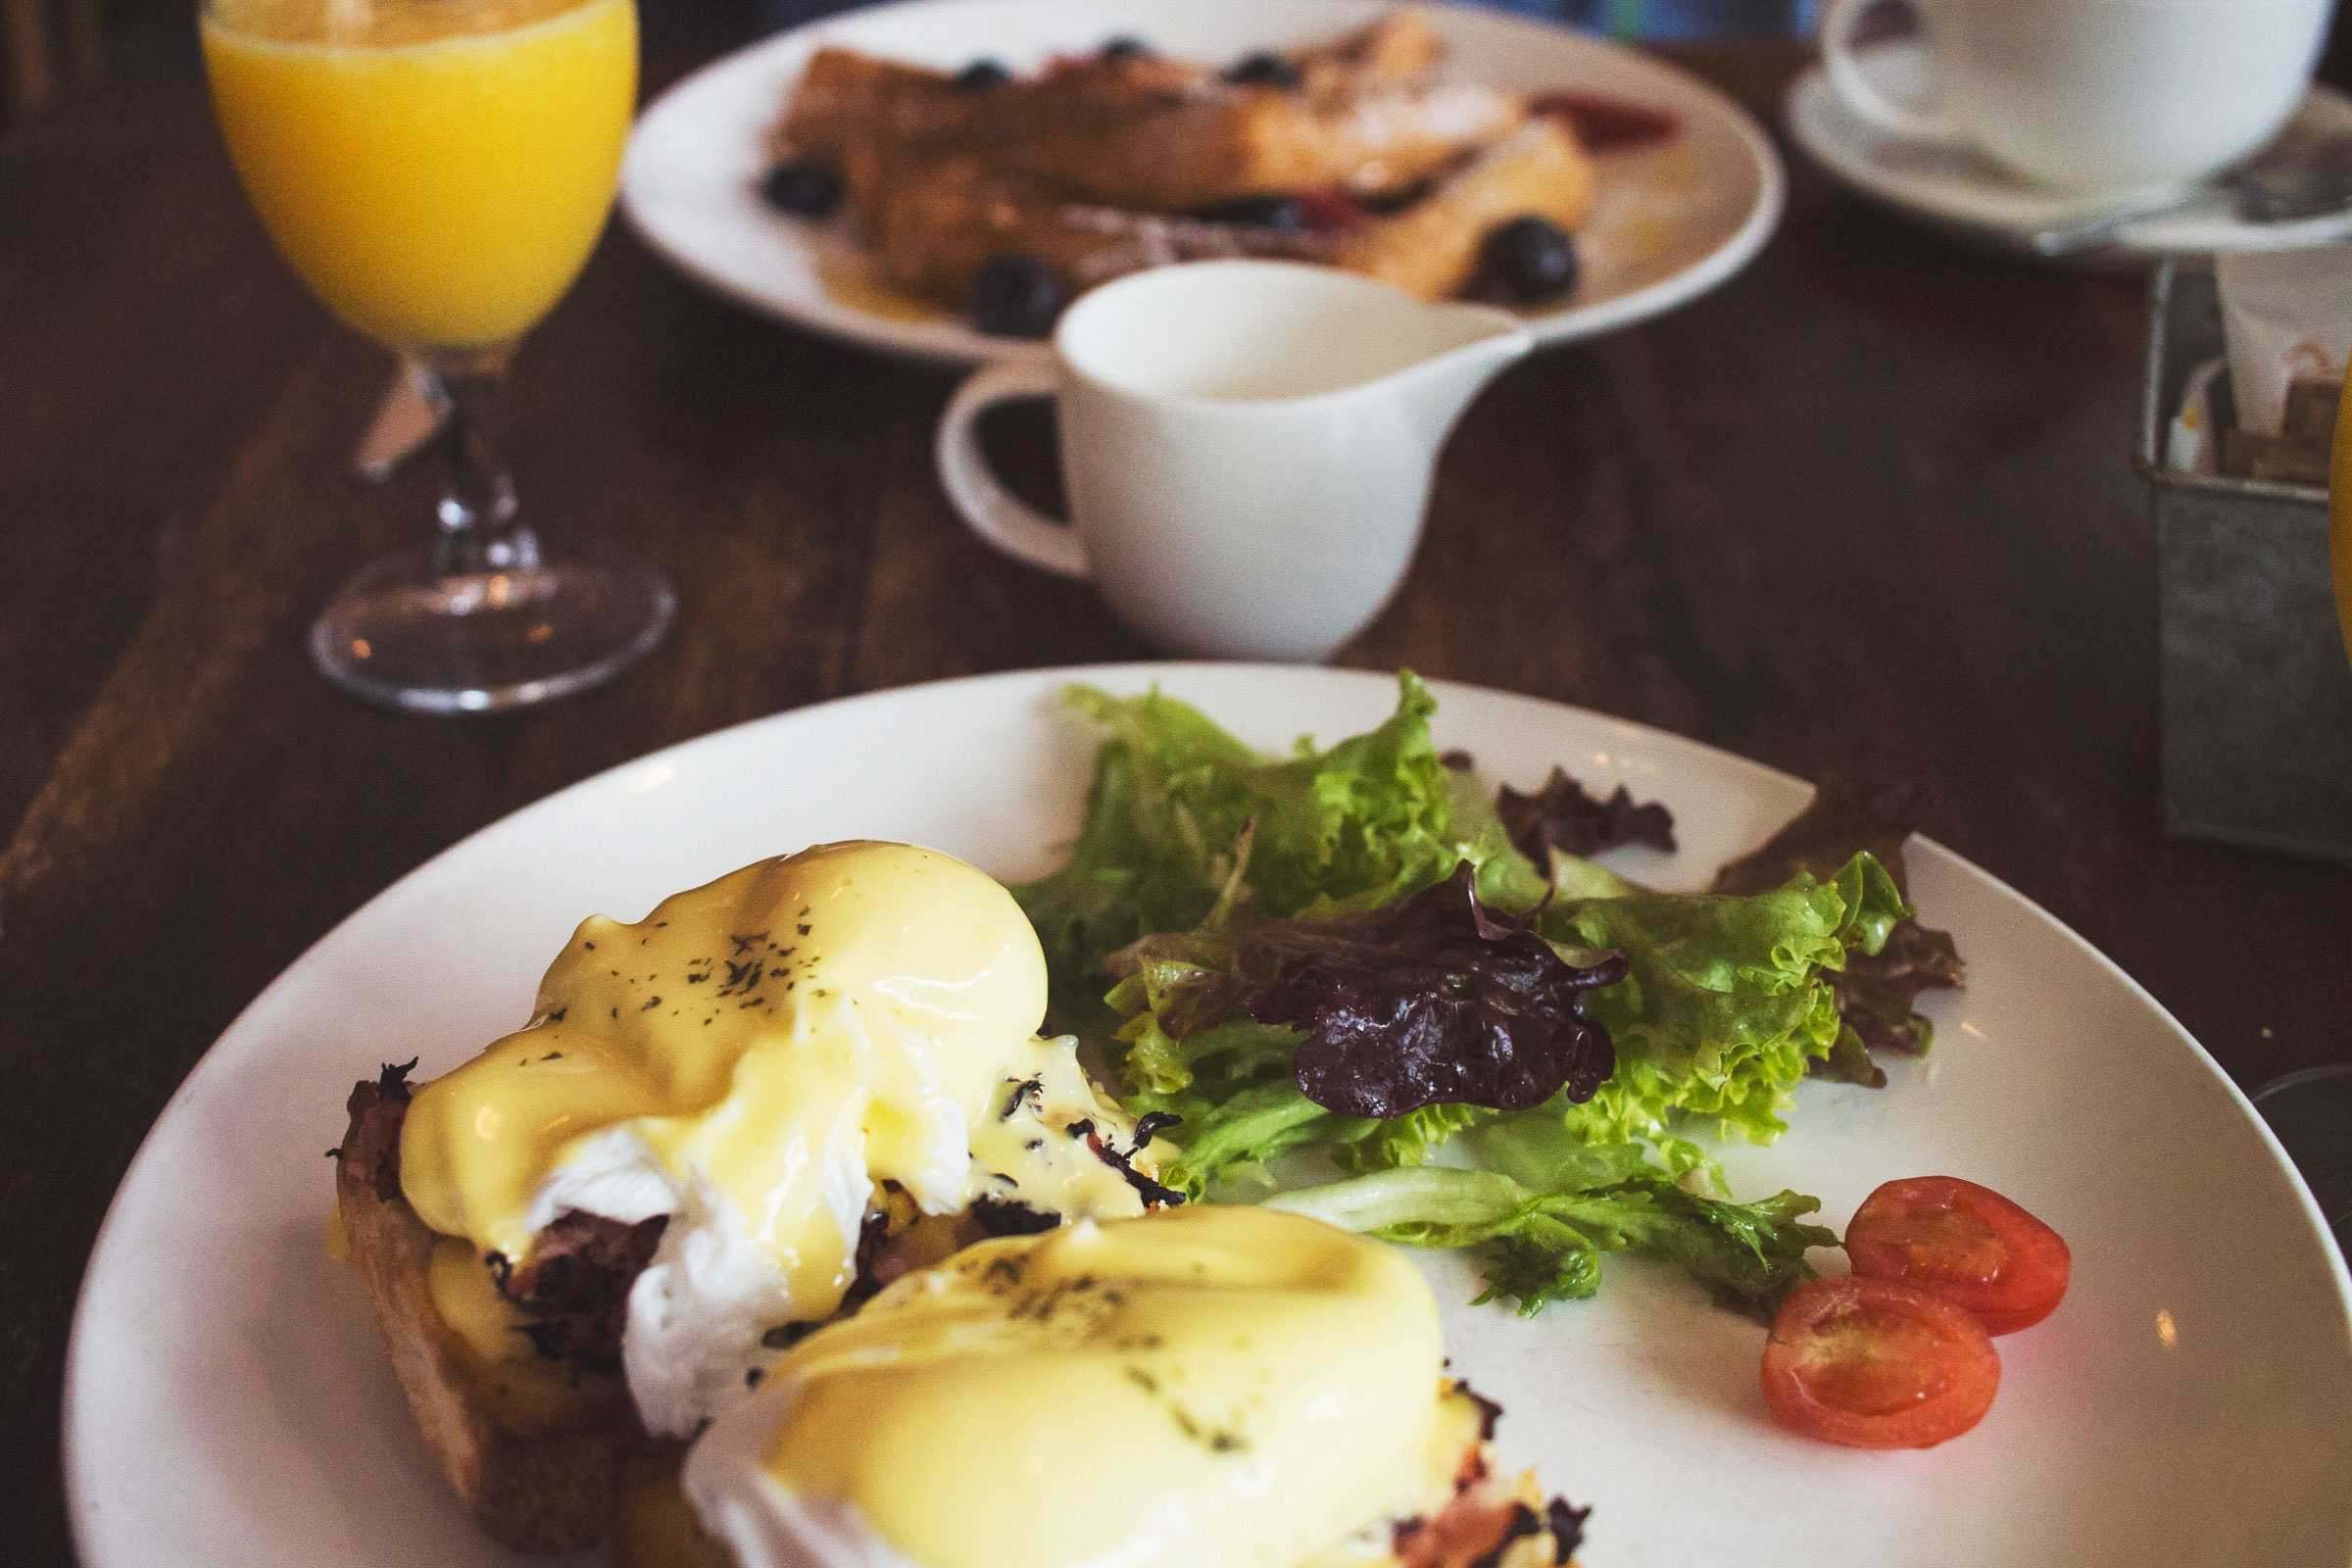 Plate of eggs benedict and side salad with glass of orange juice